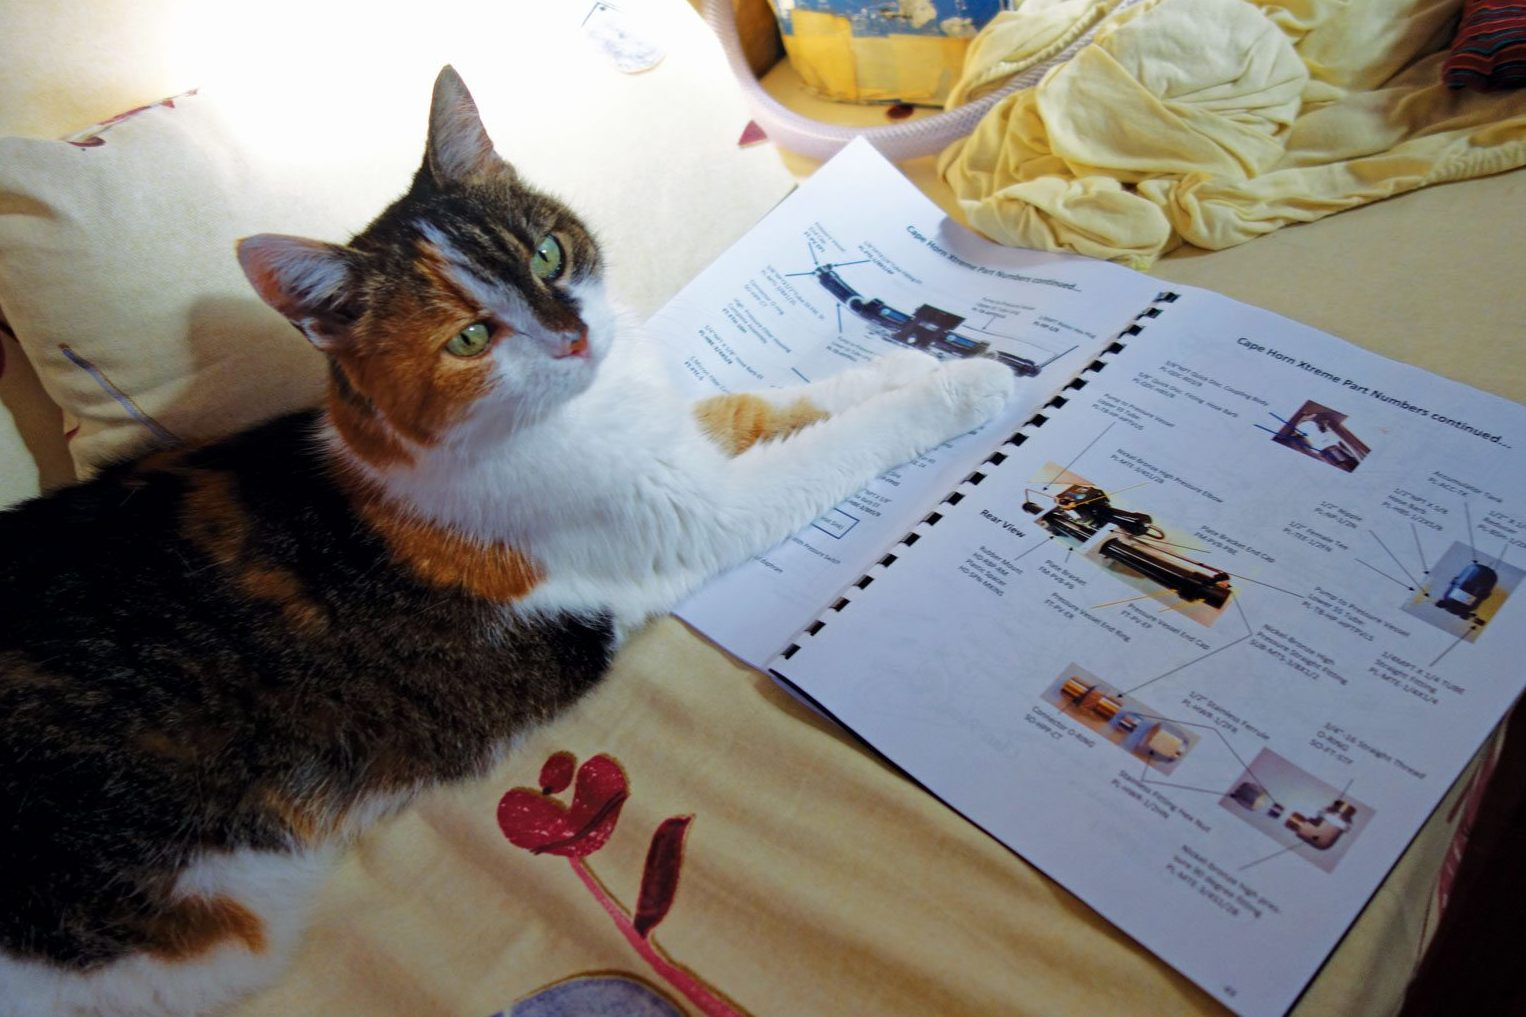 Leeloo is supervising the project. Photo by Birgit Hackl